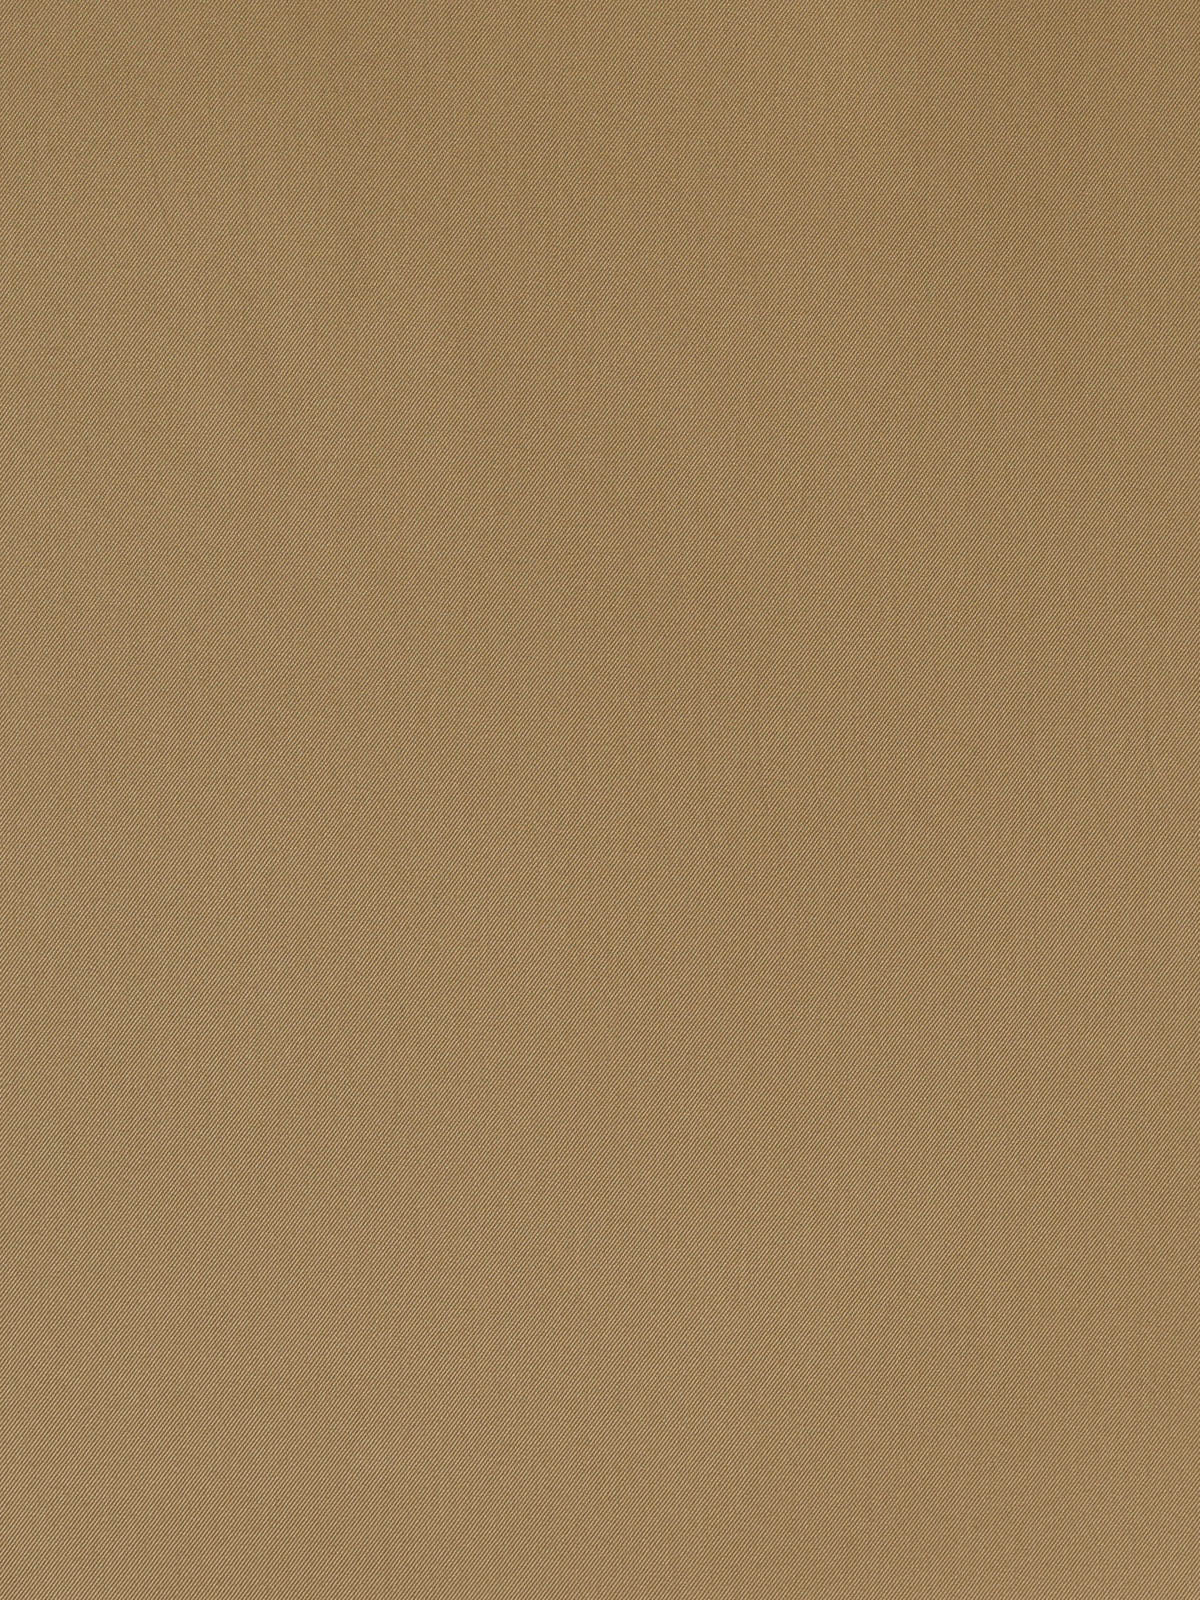 100/% COTTON DARK CAMEL BROWN COLOUR HEAVY DUTY COTTON DRILL FABRIC